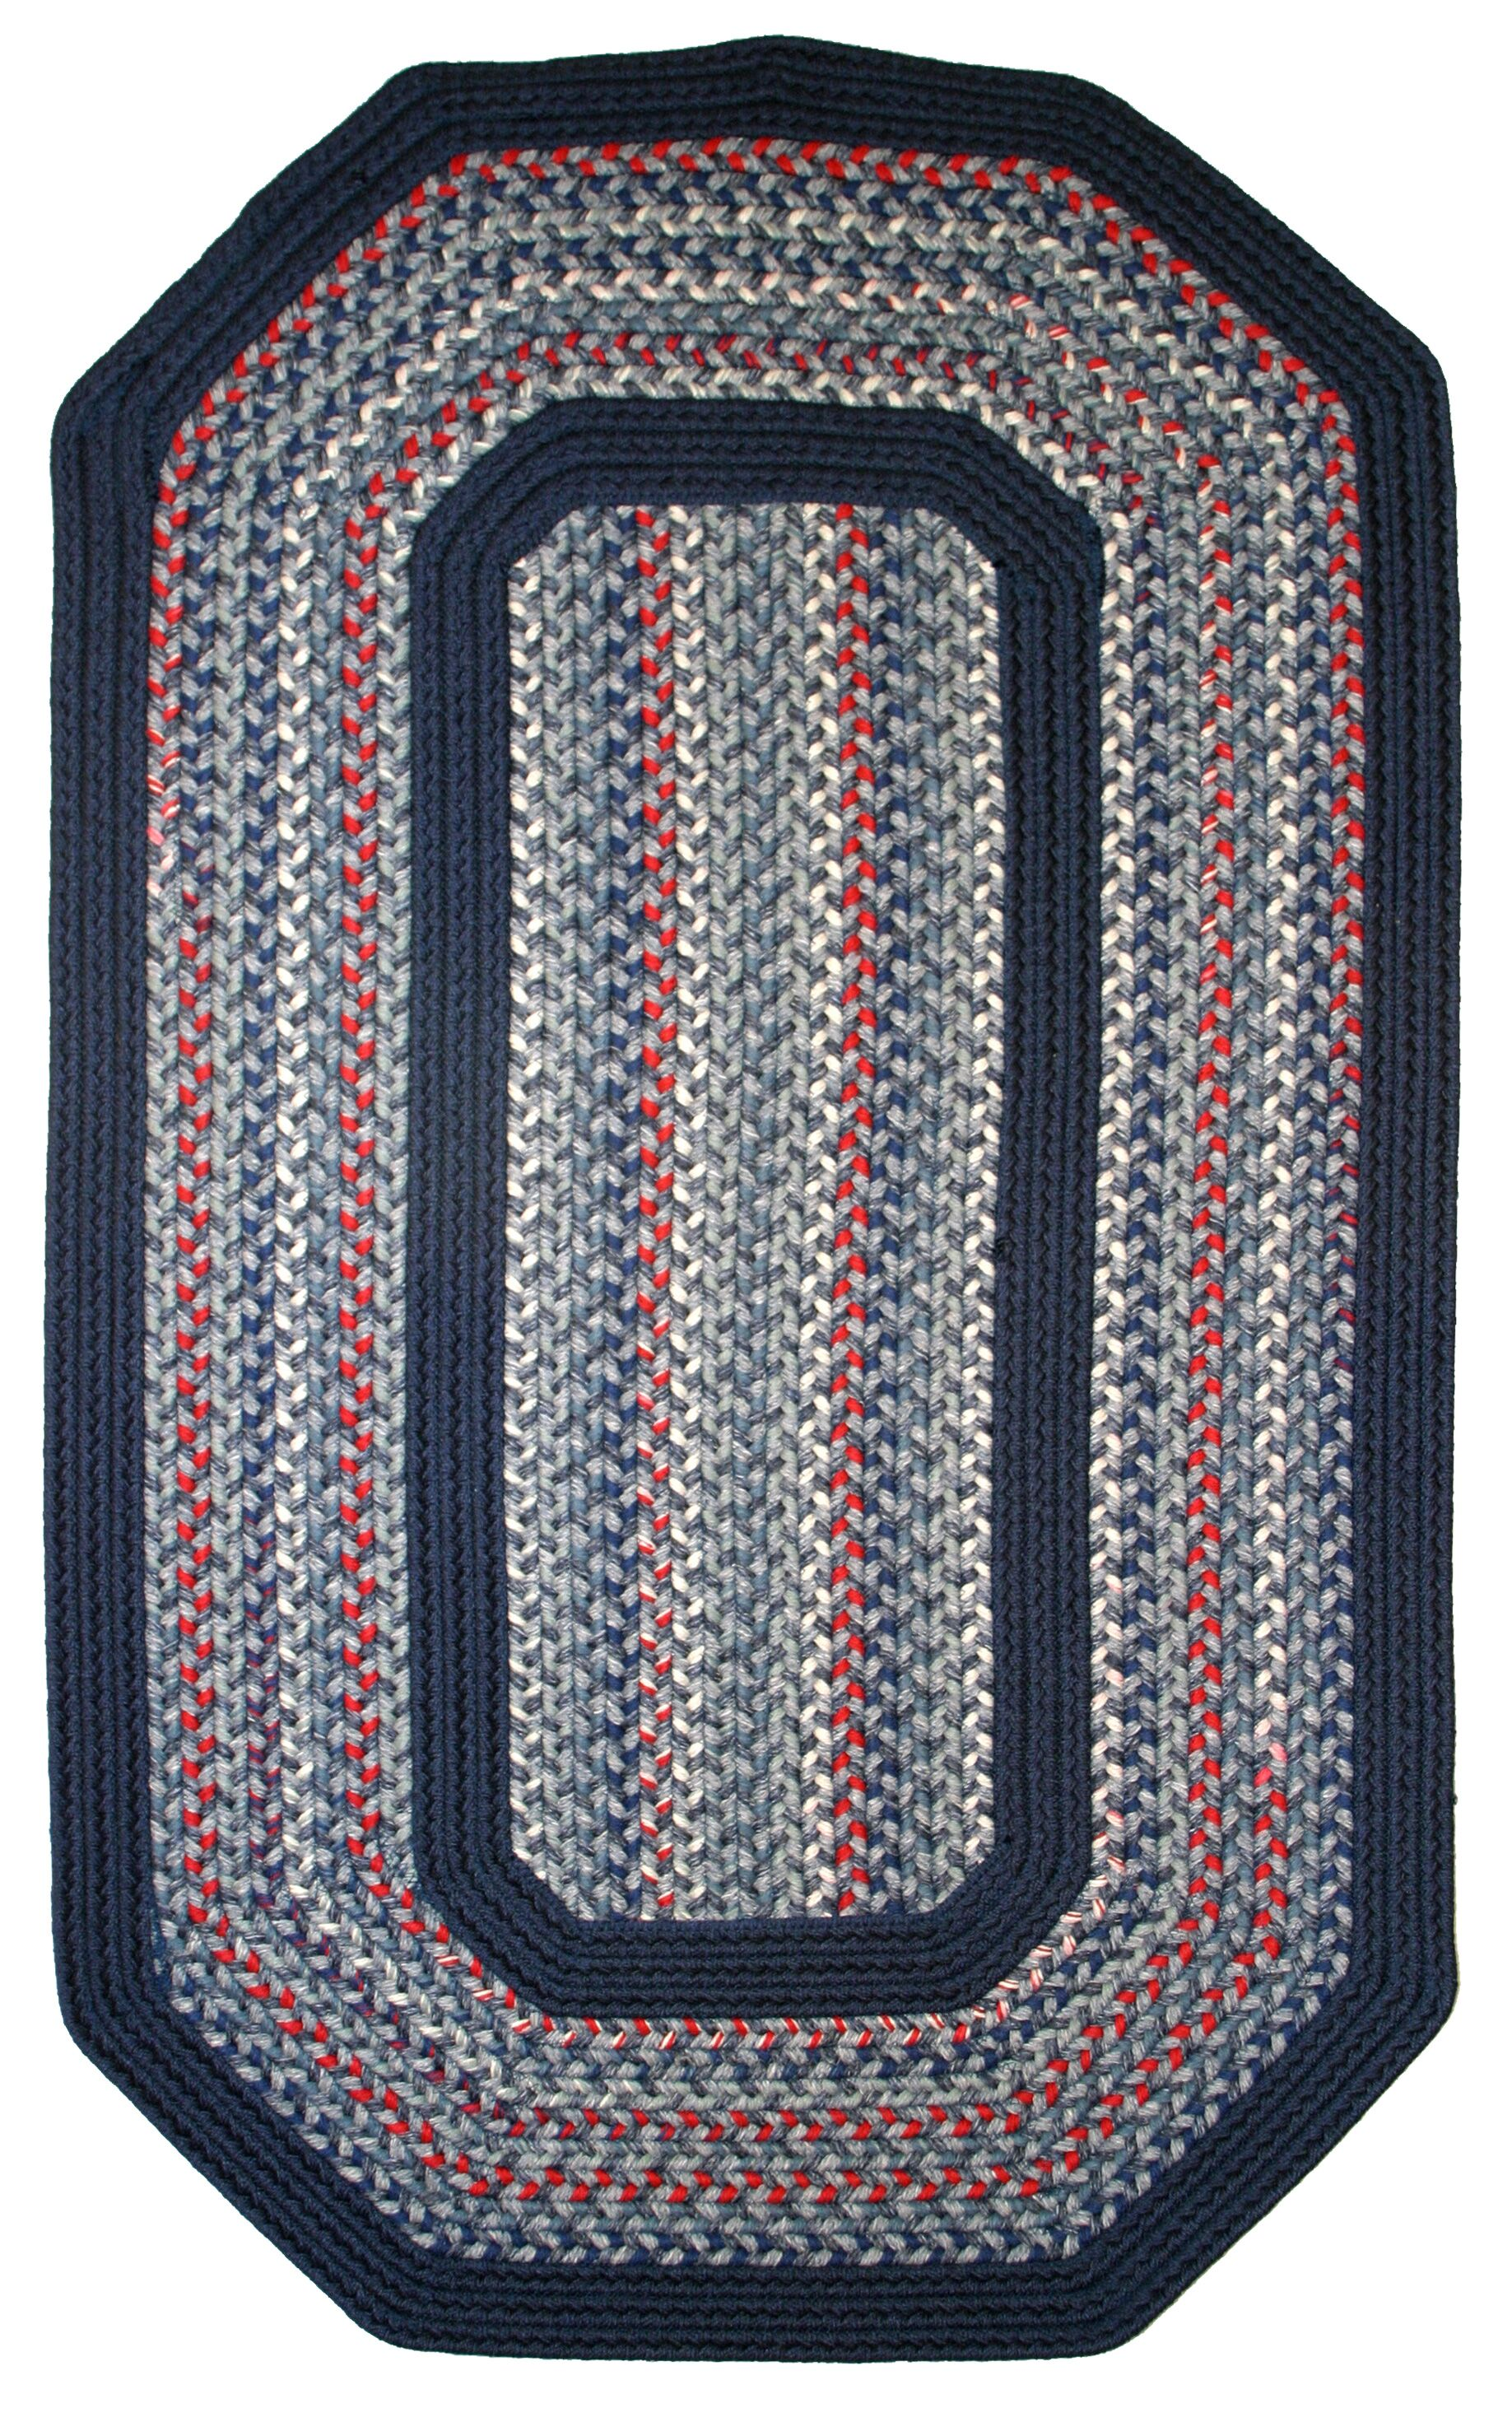 Pioneer Valley II Olympic Blue with Dark Blue Solids Multi Elongated Octagon Rug Rug Size: Elongated Octagon 9' x 12'